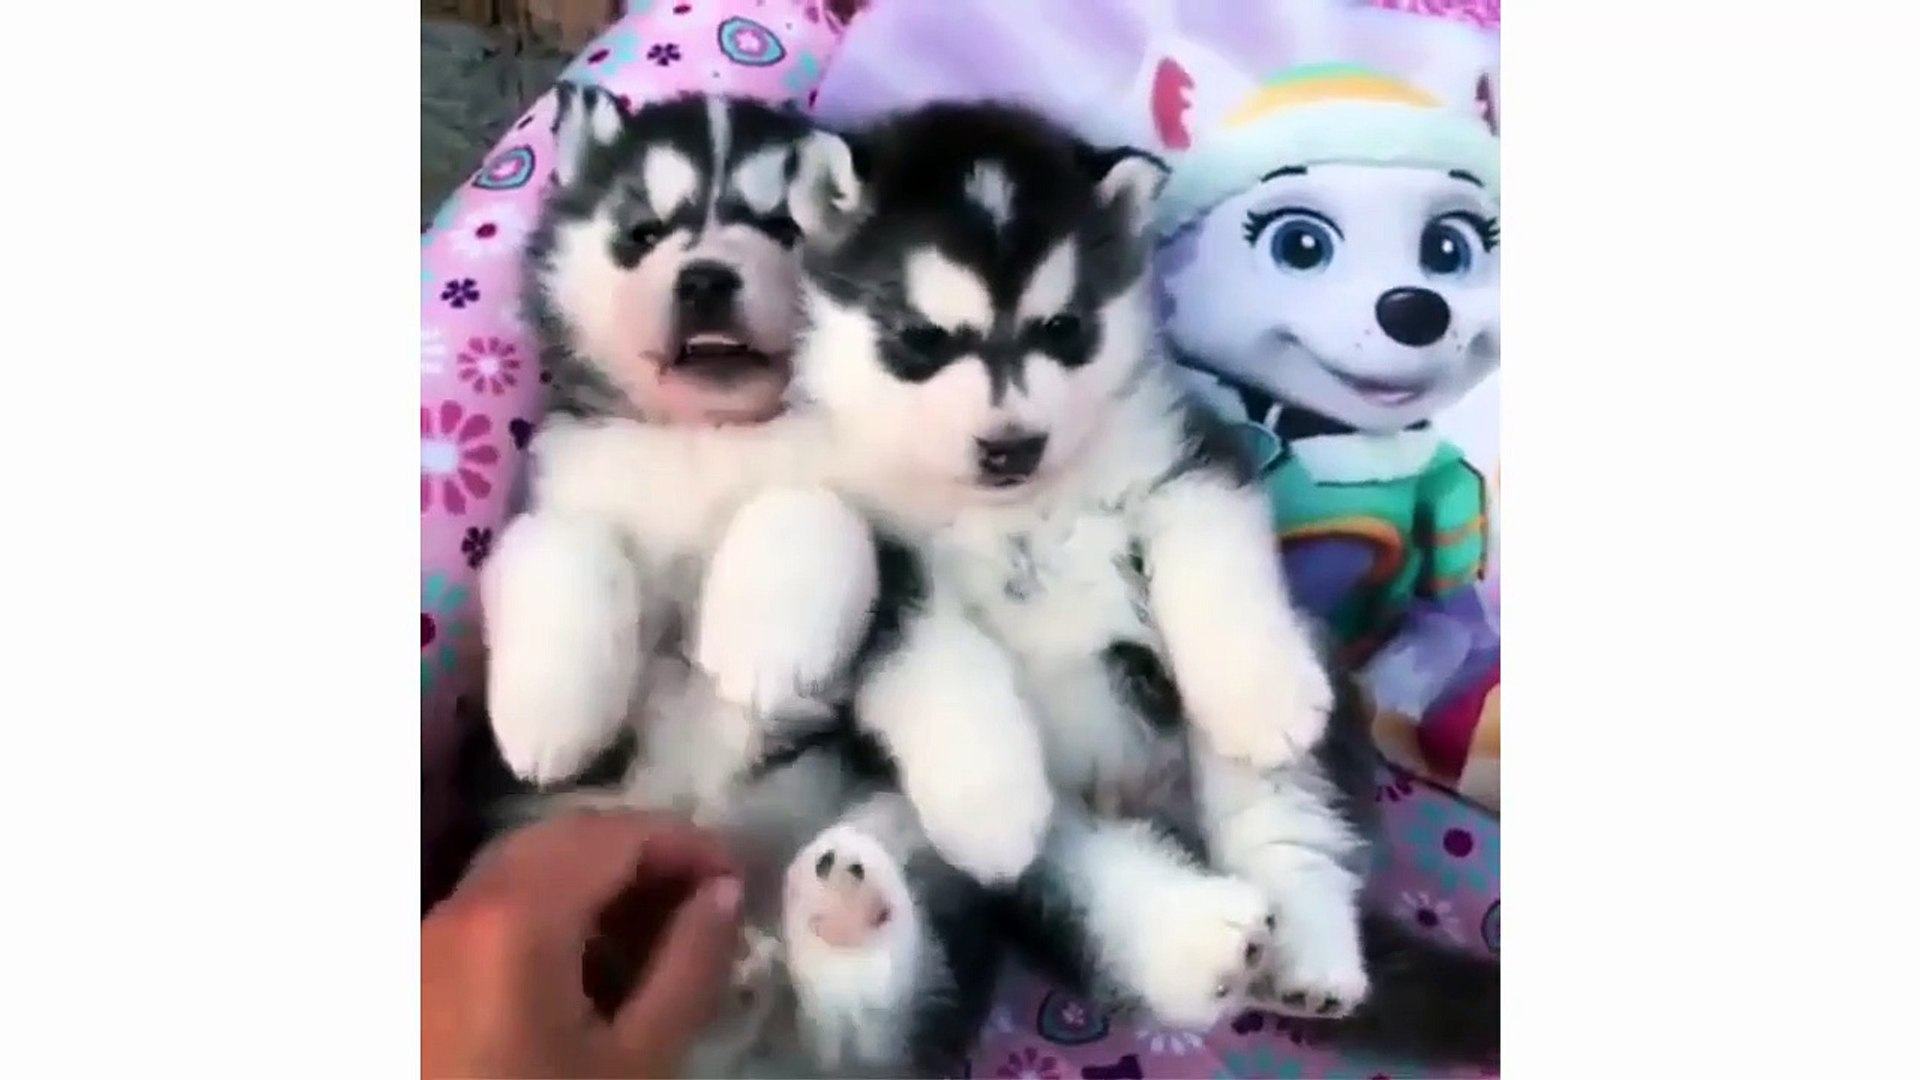 Funny And Cute Husky Puppies Compilation - Cute Alaska Puppies Video